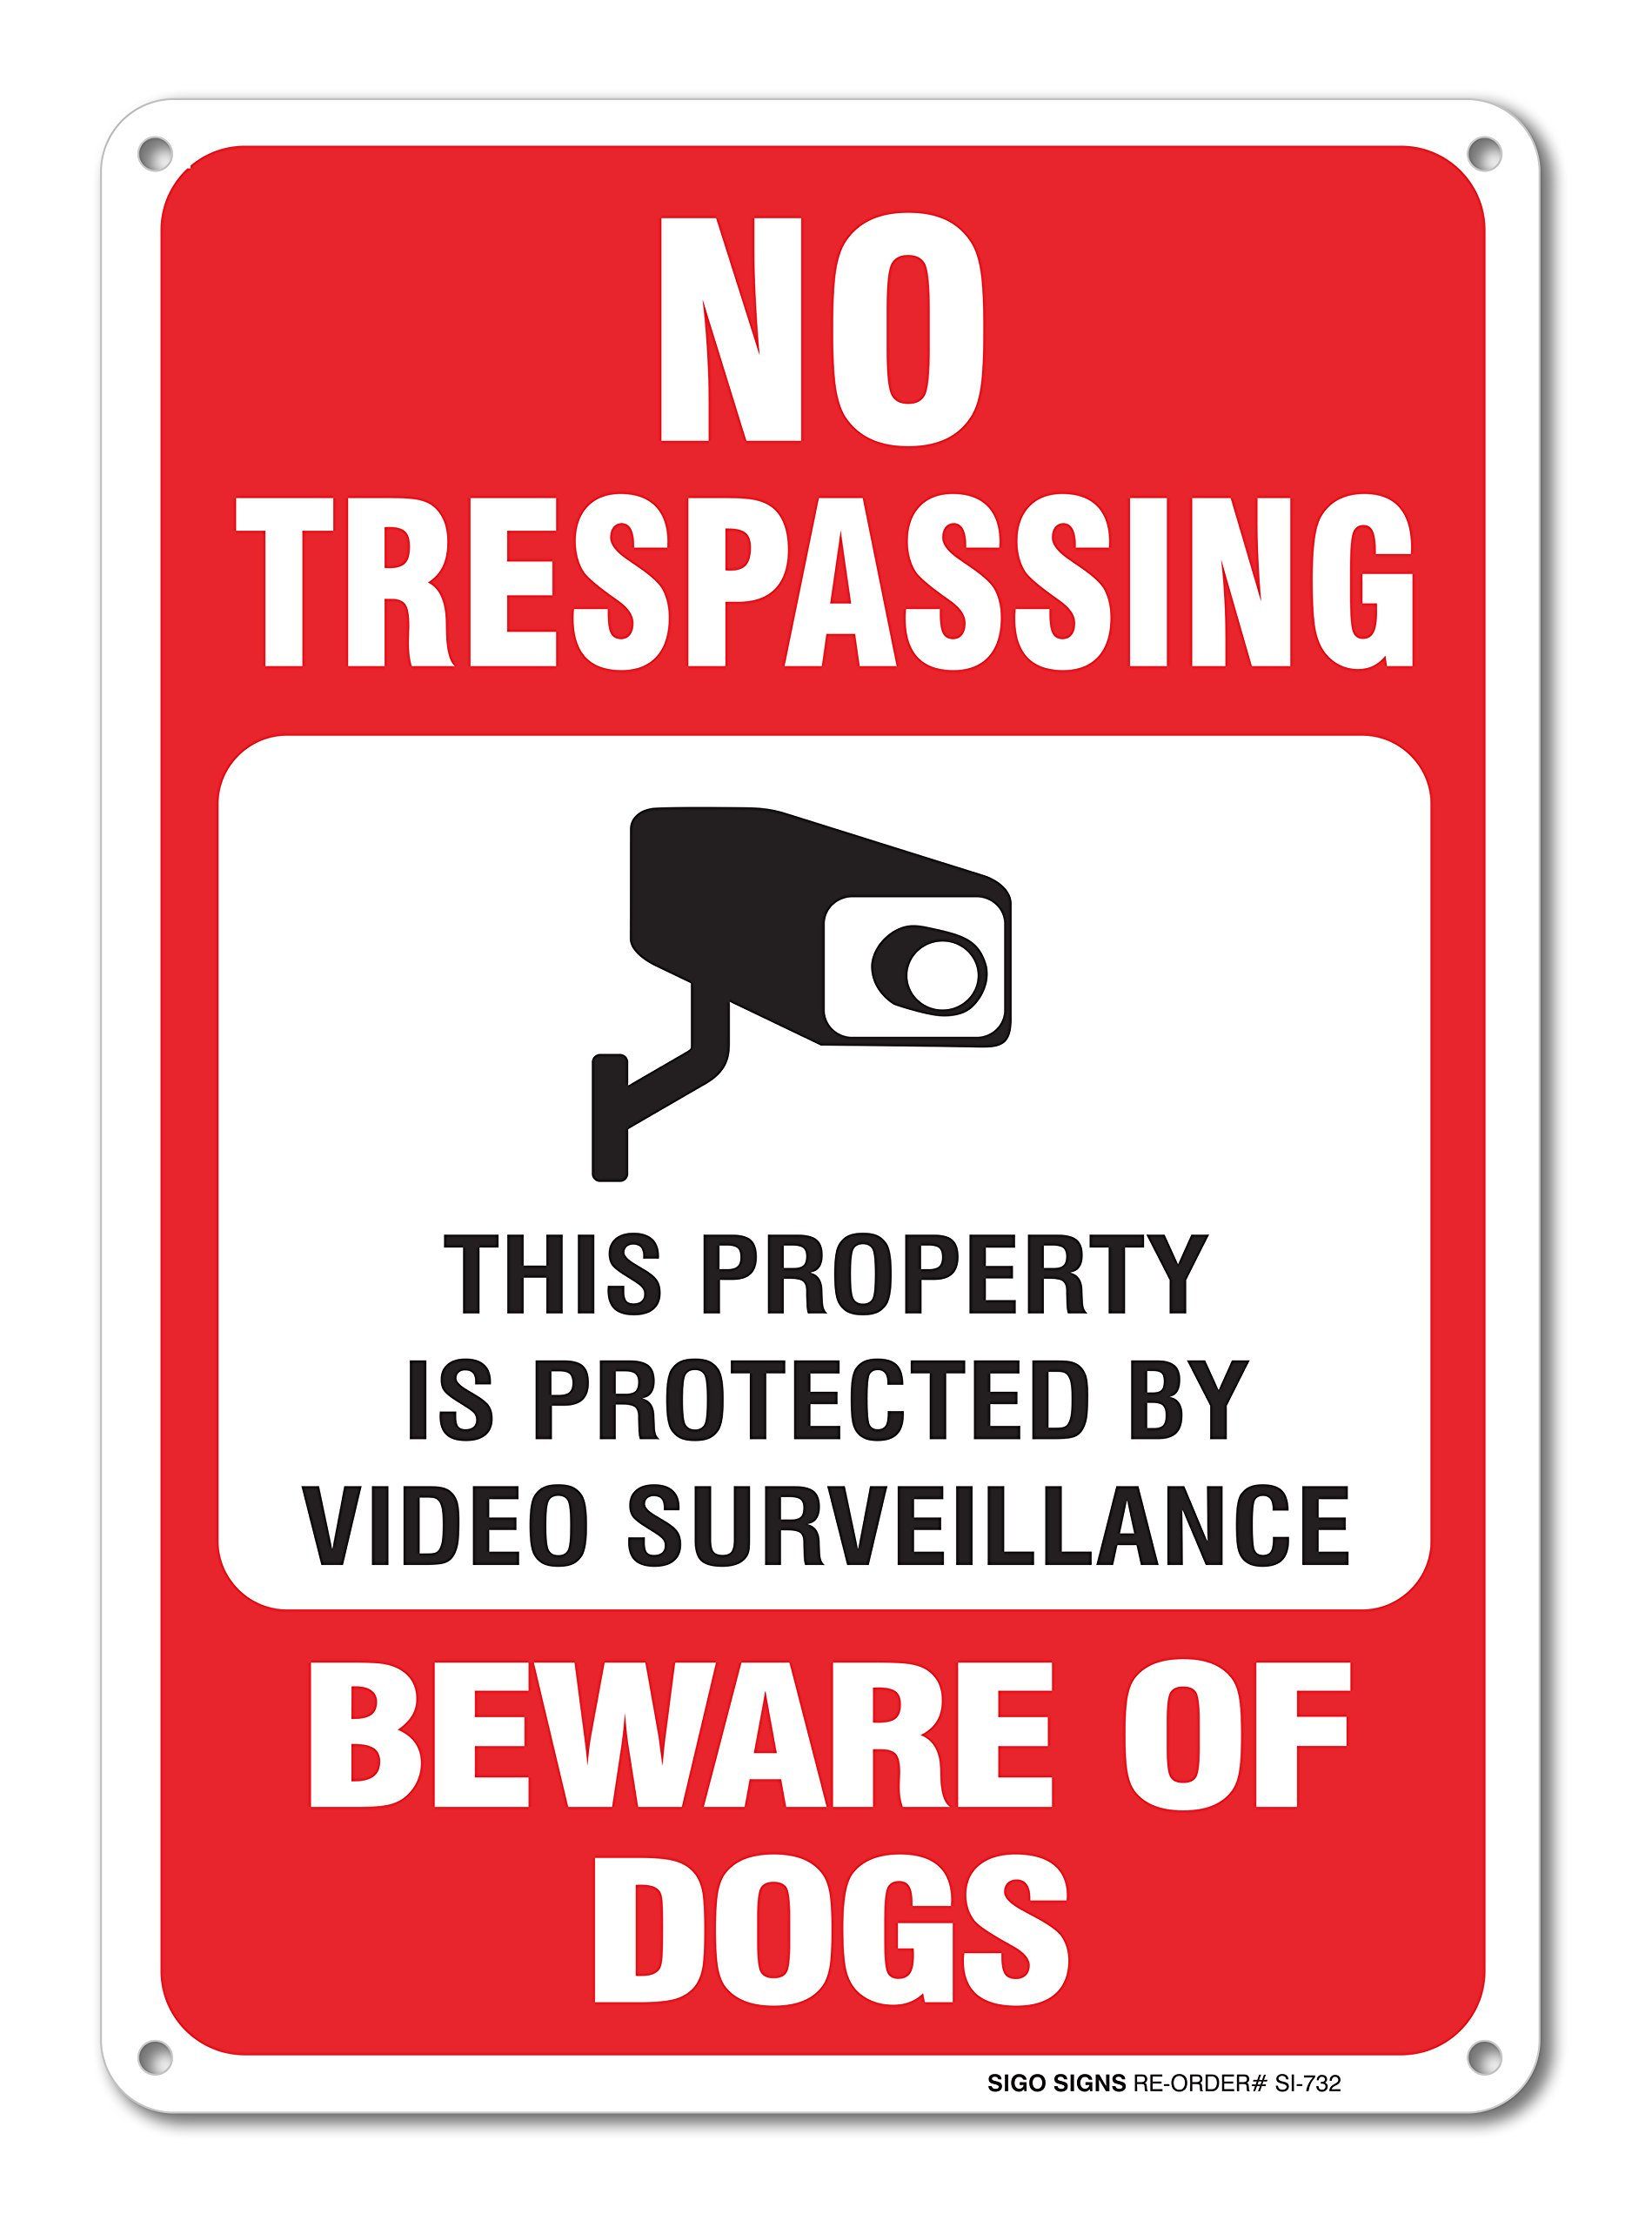 No Trespassing This Property is Protected by Video Surveillance Beware of Dogs Sign, Large 10 X 14 Aluminum, For Indoor or Outdoor Use - By SIGO SIGNS by Sigo Signs